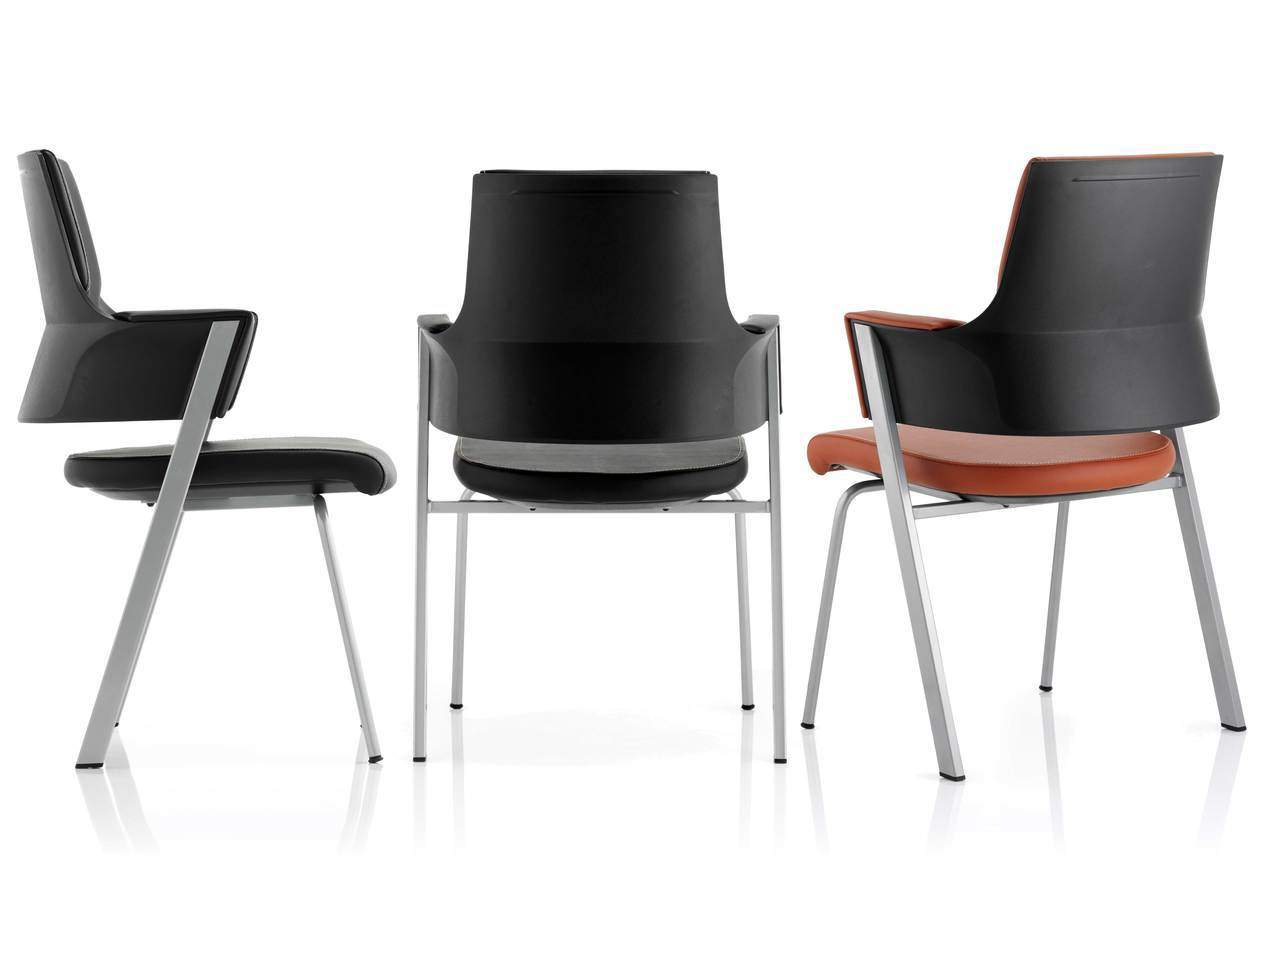 Enterprise Executive Cantilever Chair in Tan or Black Fabric or Leather